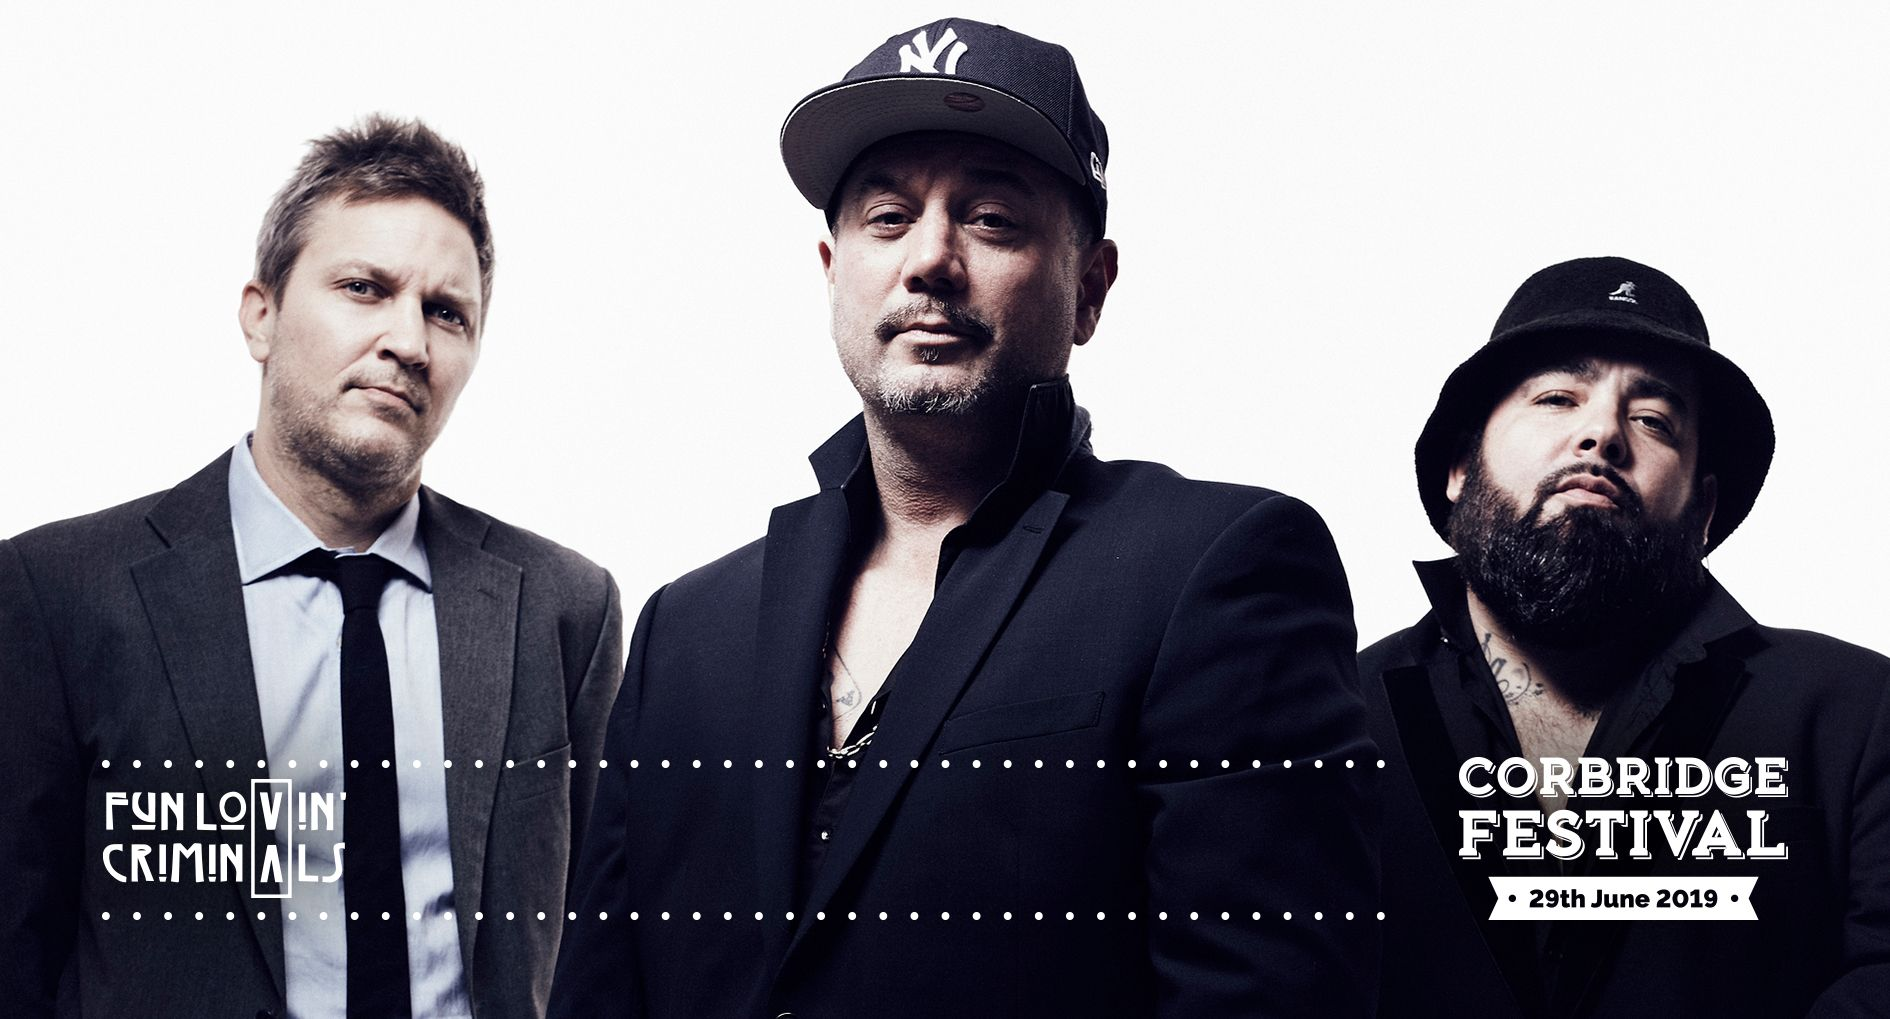 Fun Lovin' Criminals headline Corbridge Festival 2019 on Saturday 29th June